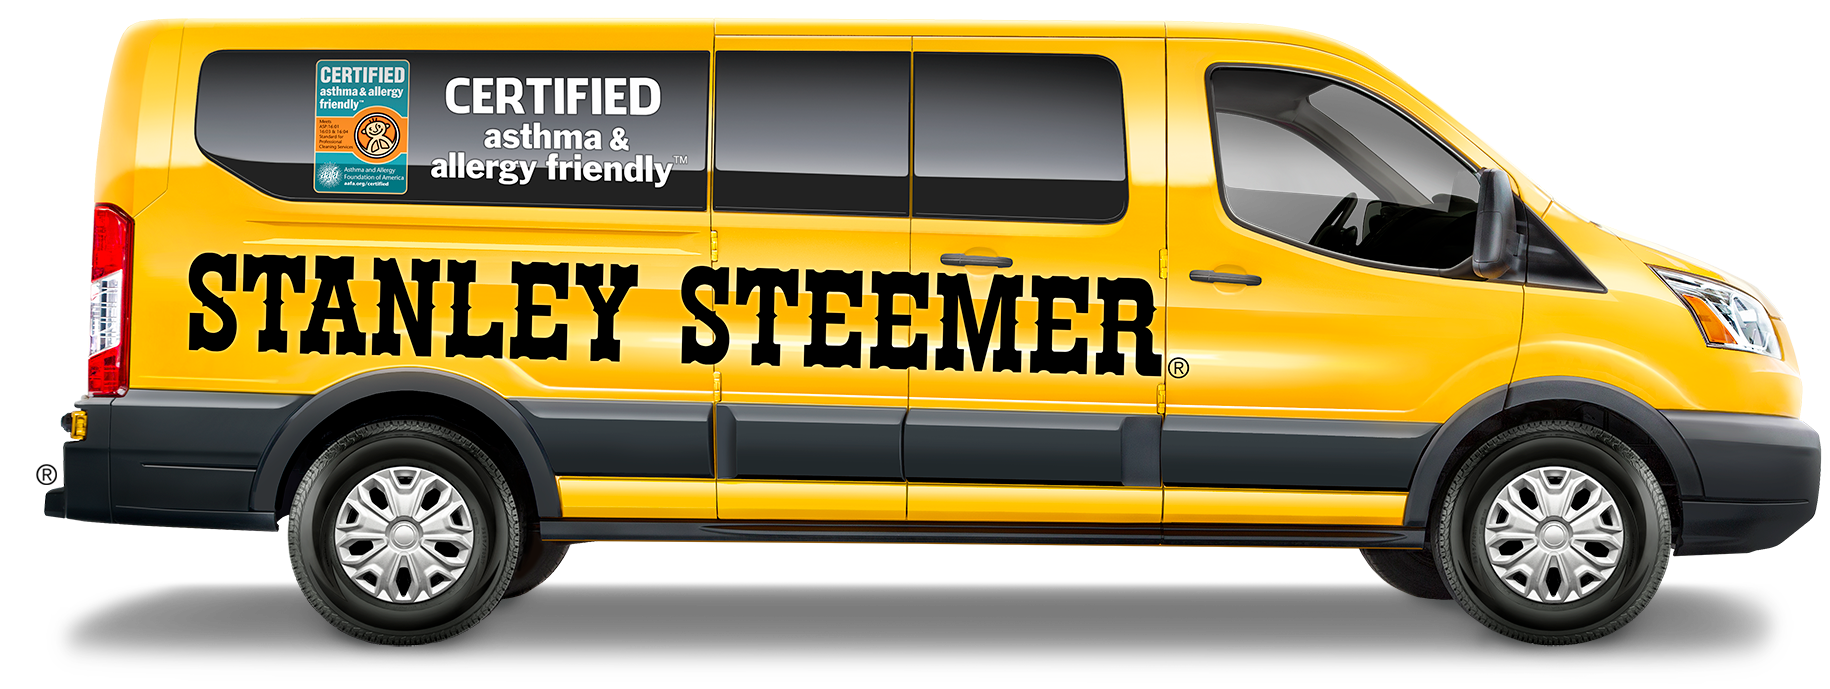 Stanley Steemer Carpet & Air Duct Cleaning logo